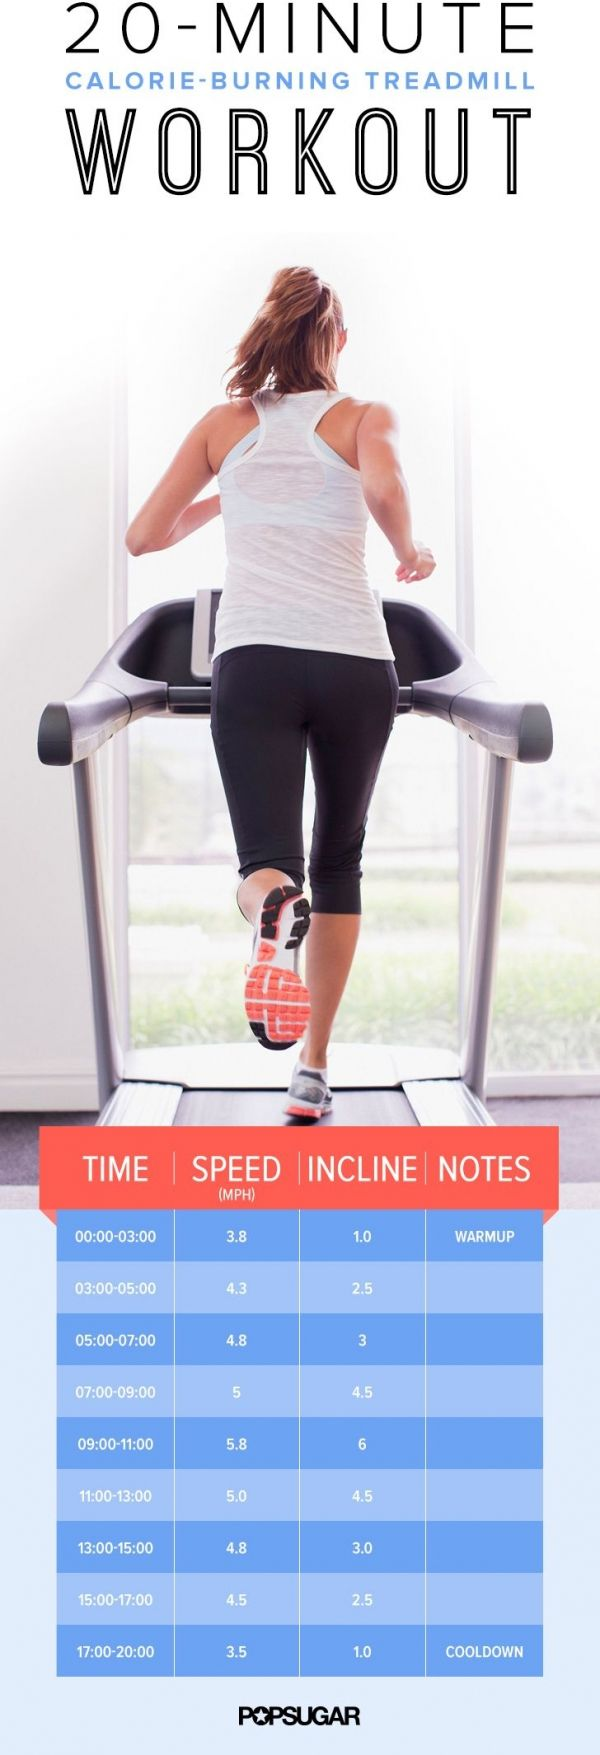 how to get the most out of an elliptical